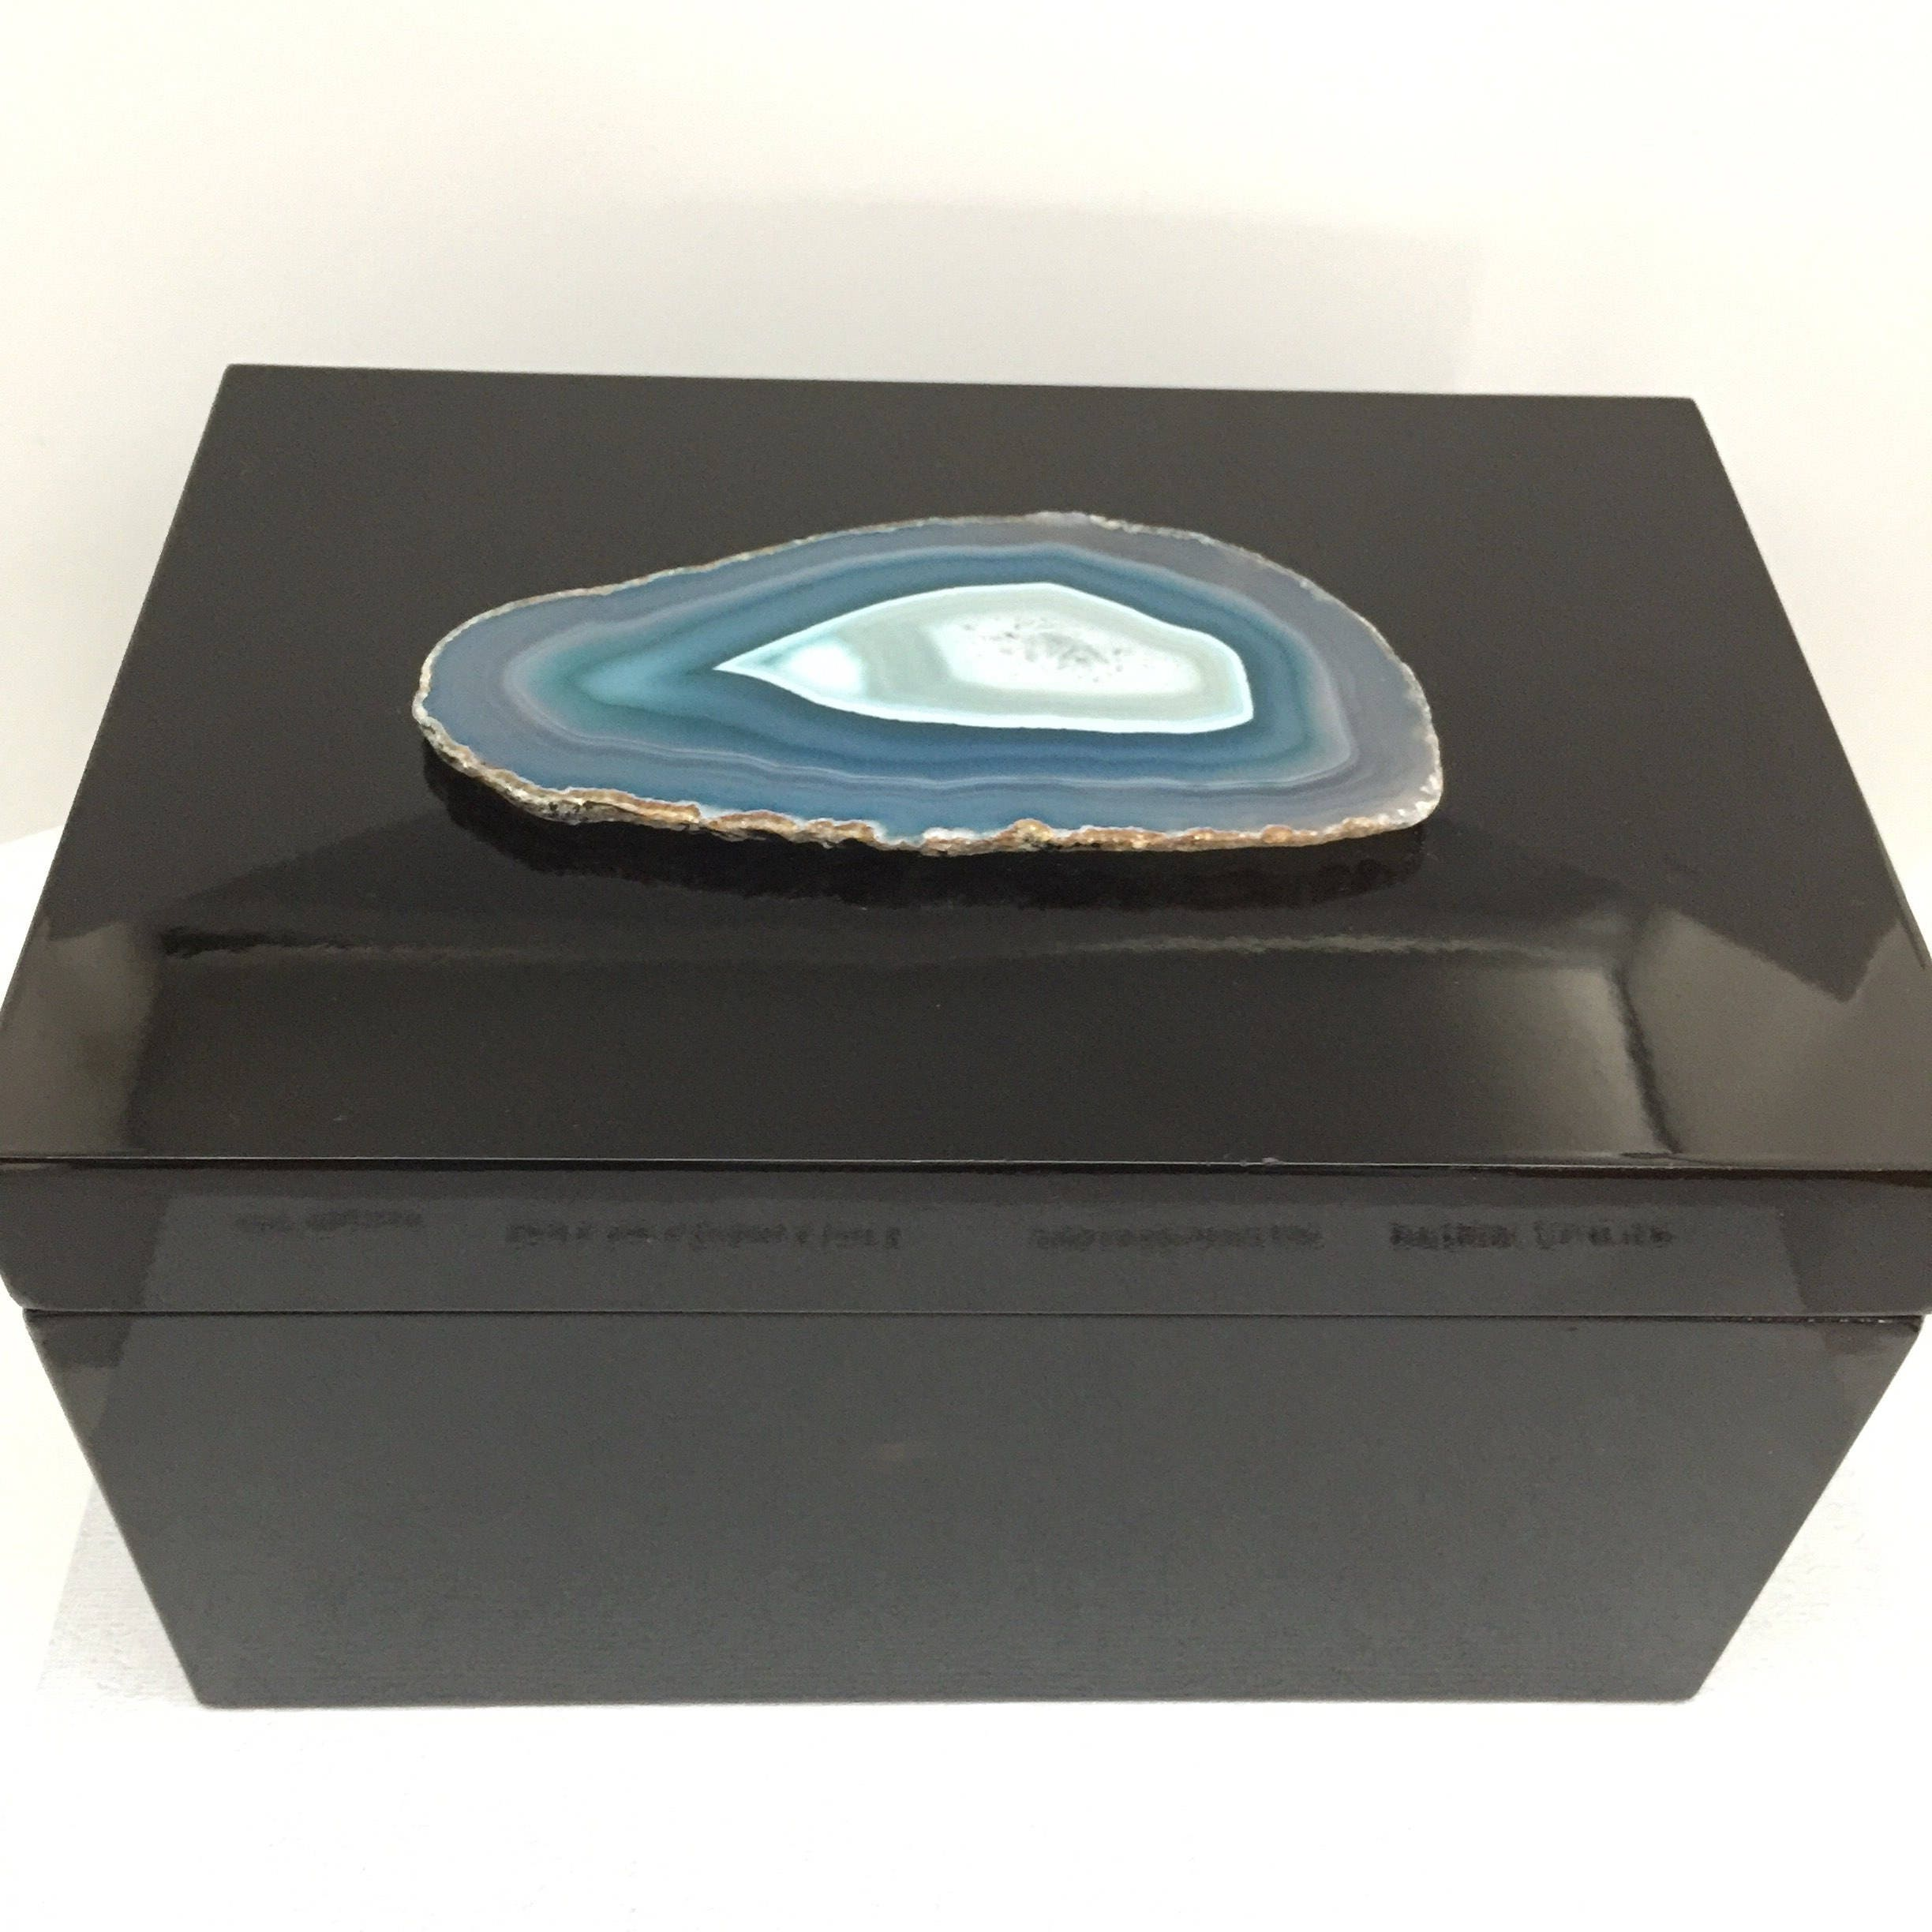 Extra Large Black Lacquer Storage Box With Blue Teal Agate Geode